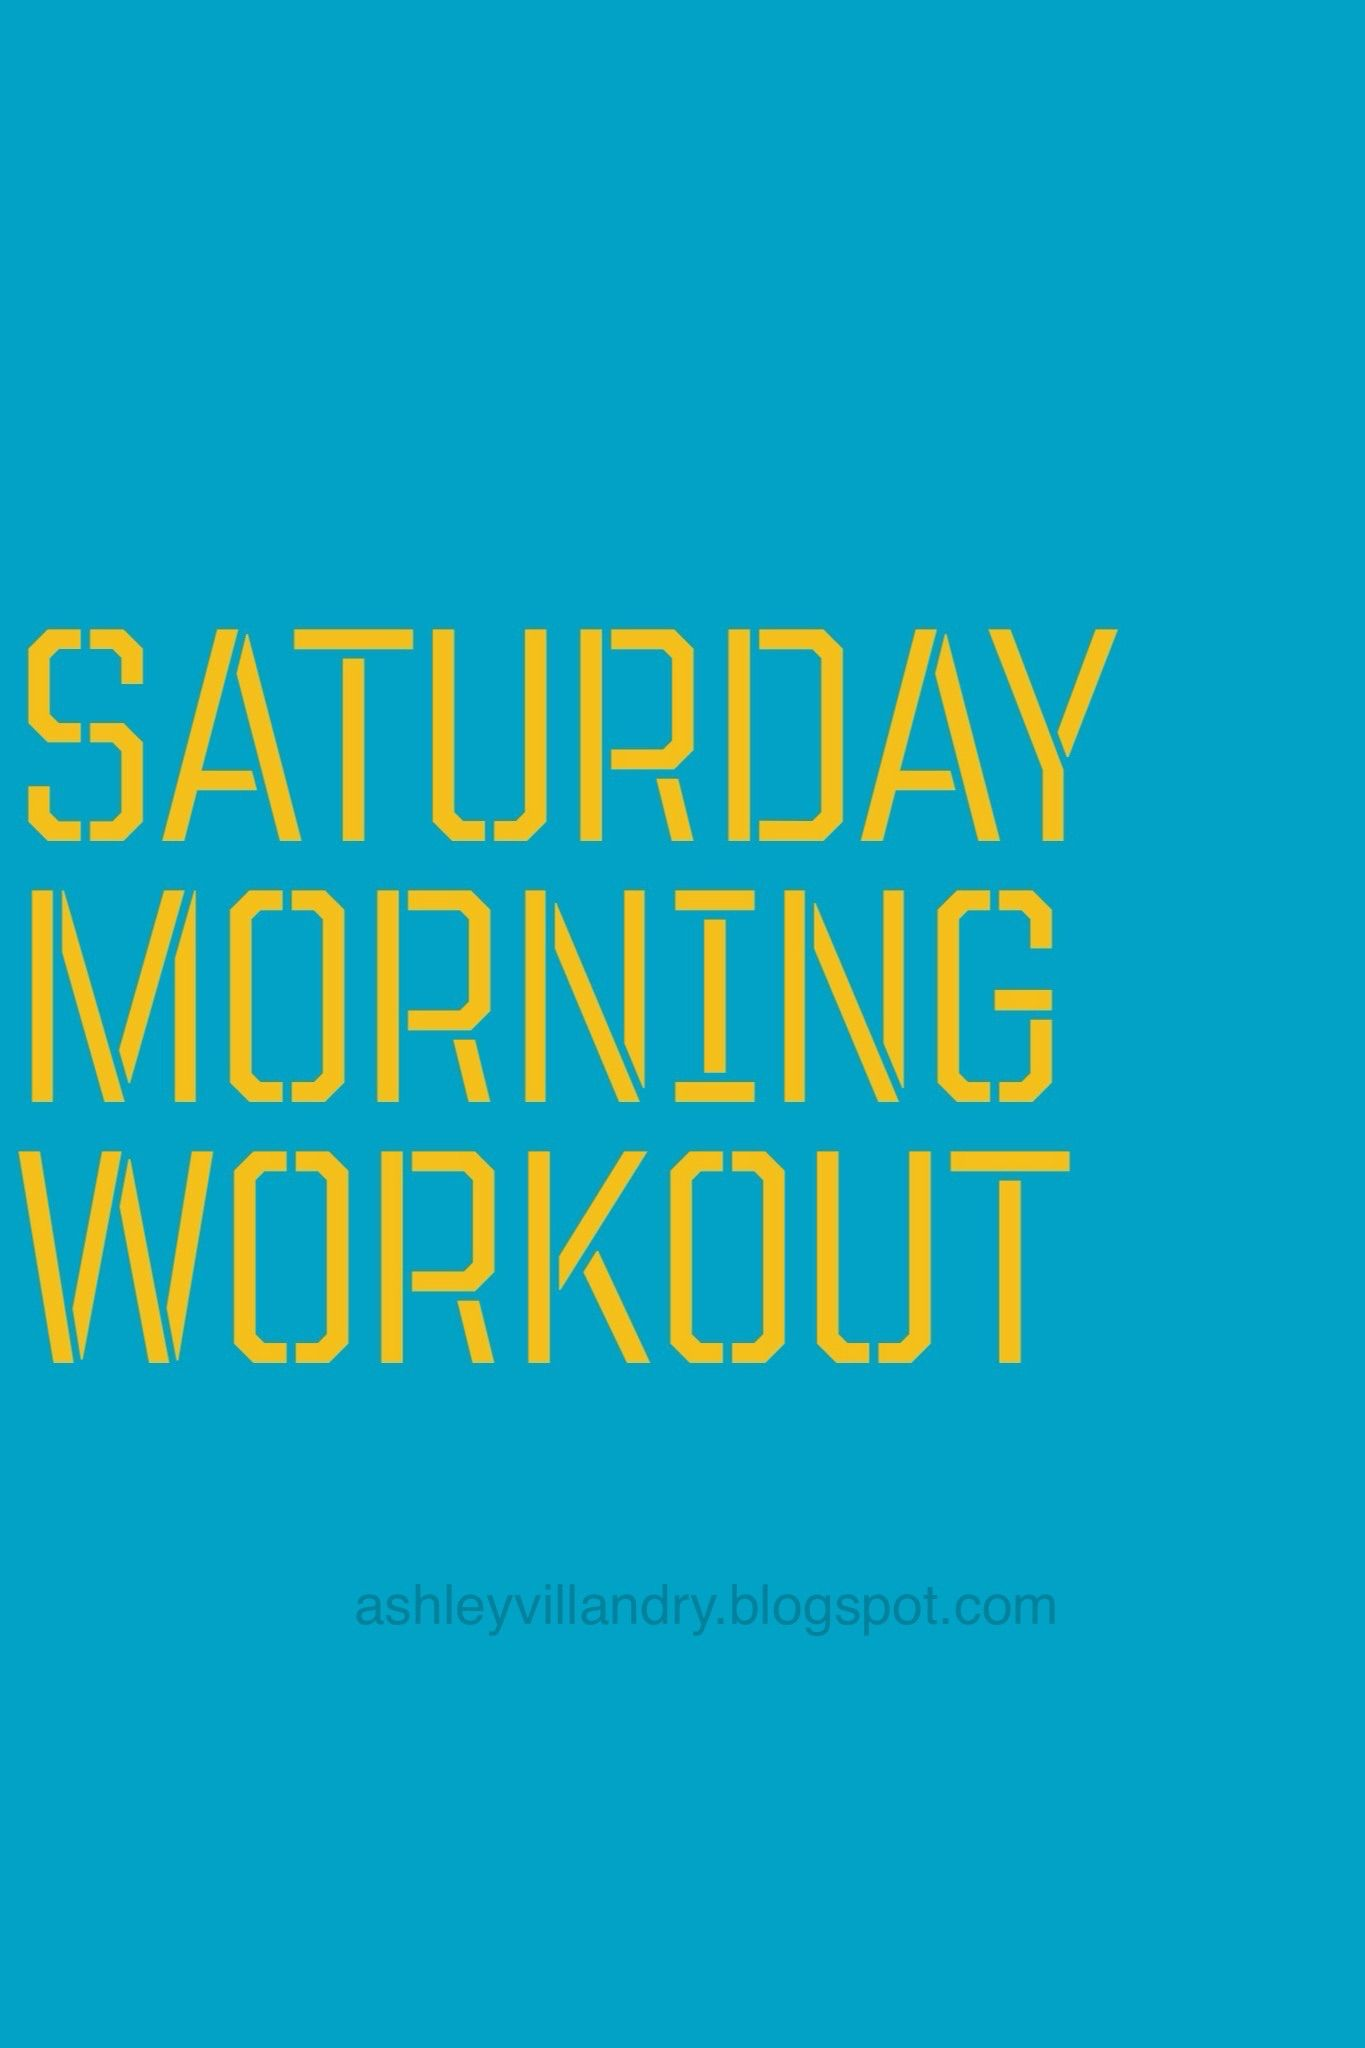 Morning Workout Quotes : morning, workout, quotes, Enjoy, Saturday, Morning, Workout, #workout, #motivation, #fitness, #inspiration, #exercise, #health…, Quotes,, Quotes, Funny,